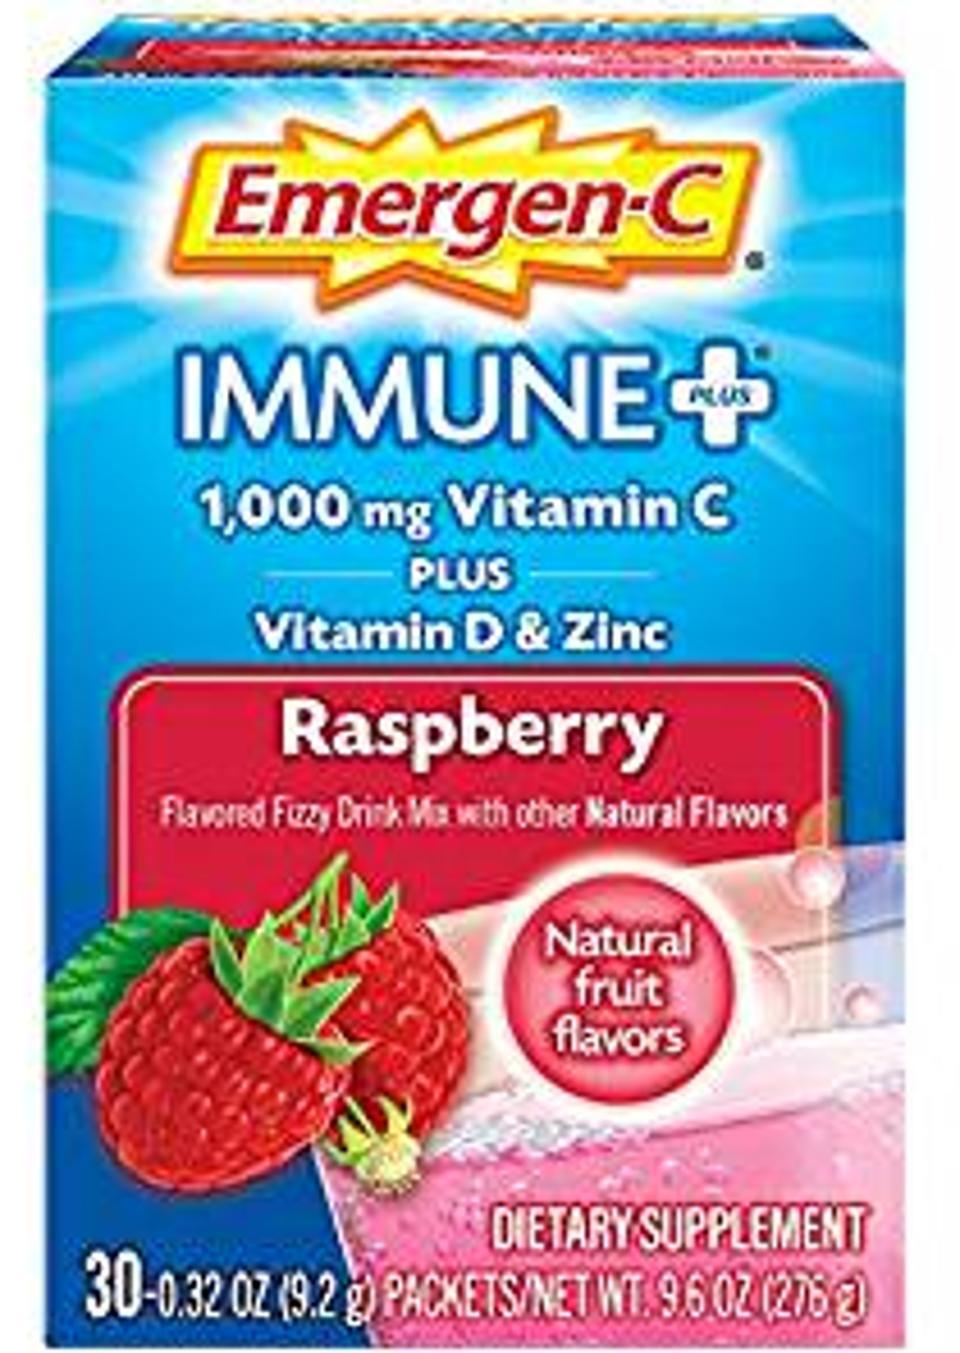 Emergen-C Immune Plus 1,000 mg Vitamin C